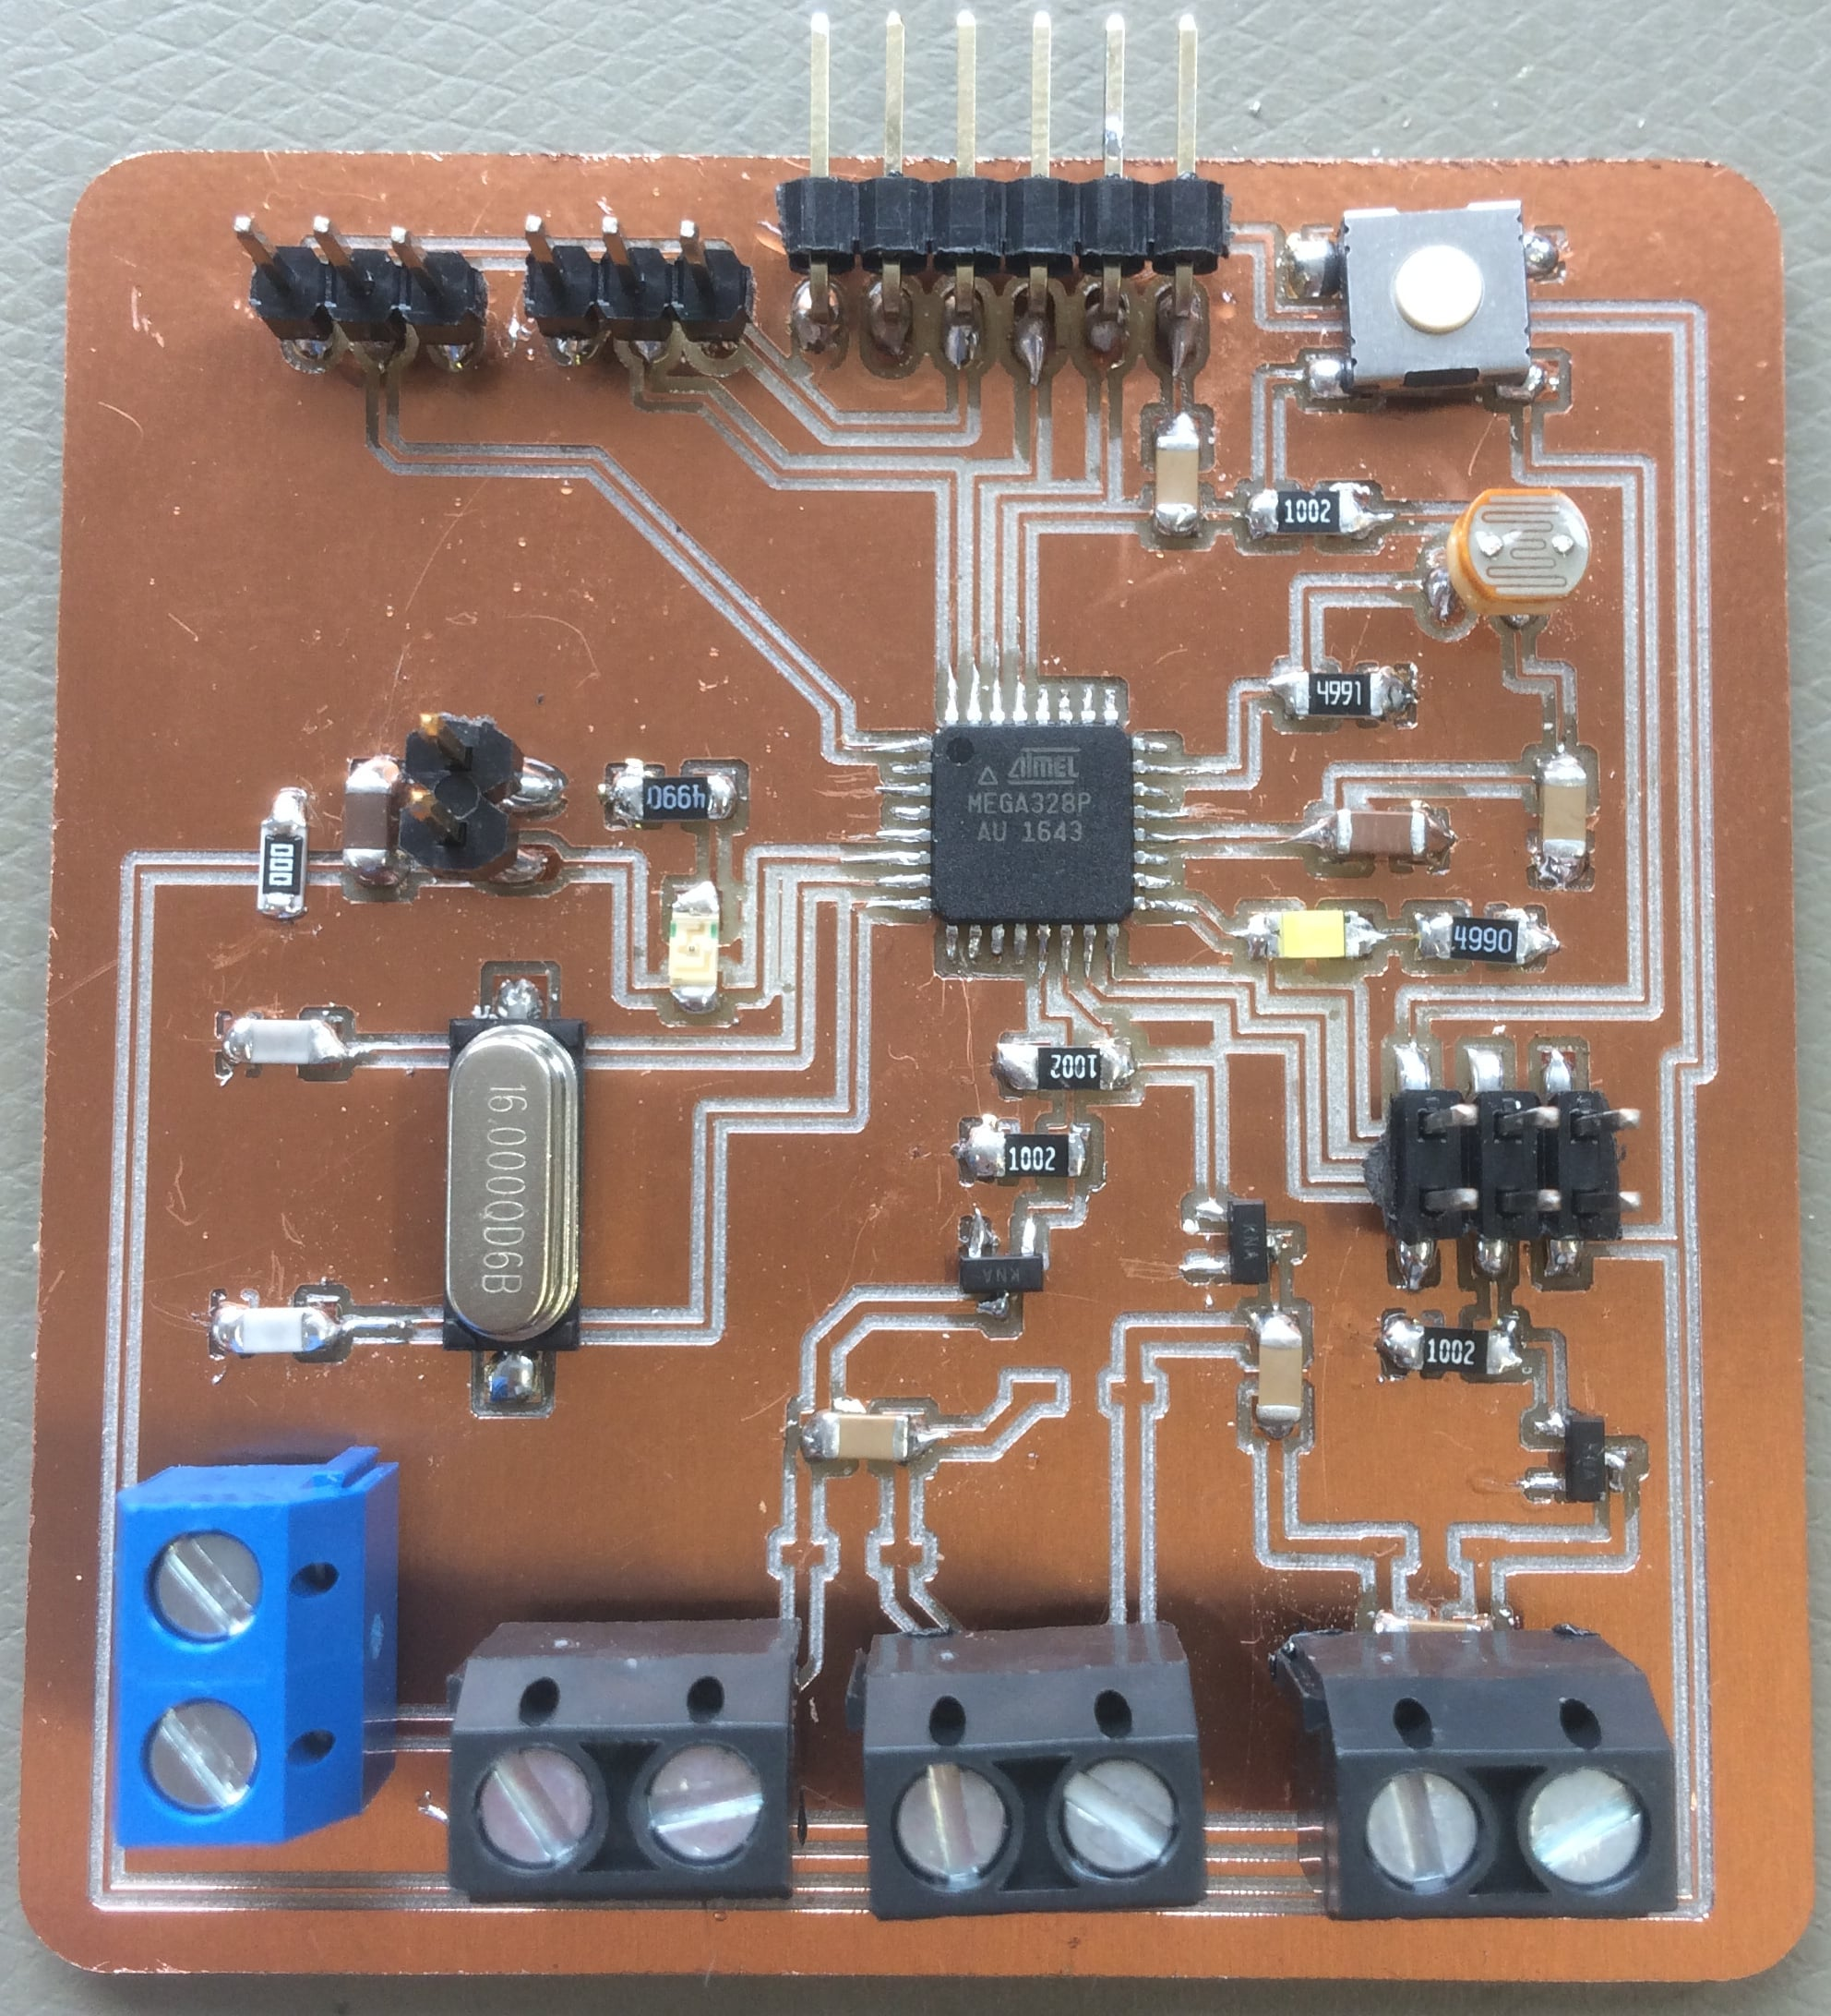 Albot Dima Fab Academy 2017 Ir Thermometer Circuit Board Mods I Used A Multimeter An To Program My Arduino Ide Connect The Usb Hub In Tools Menu Select Right Uno Genuino And